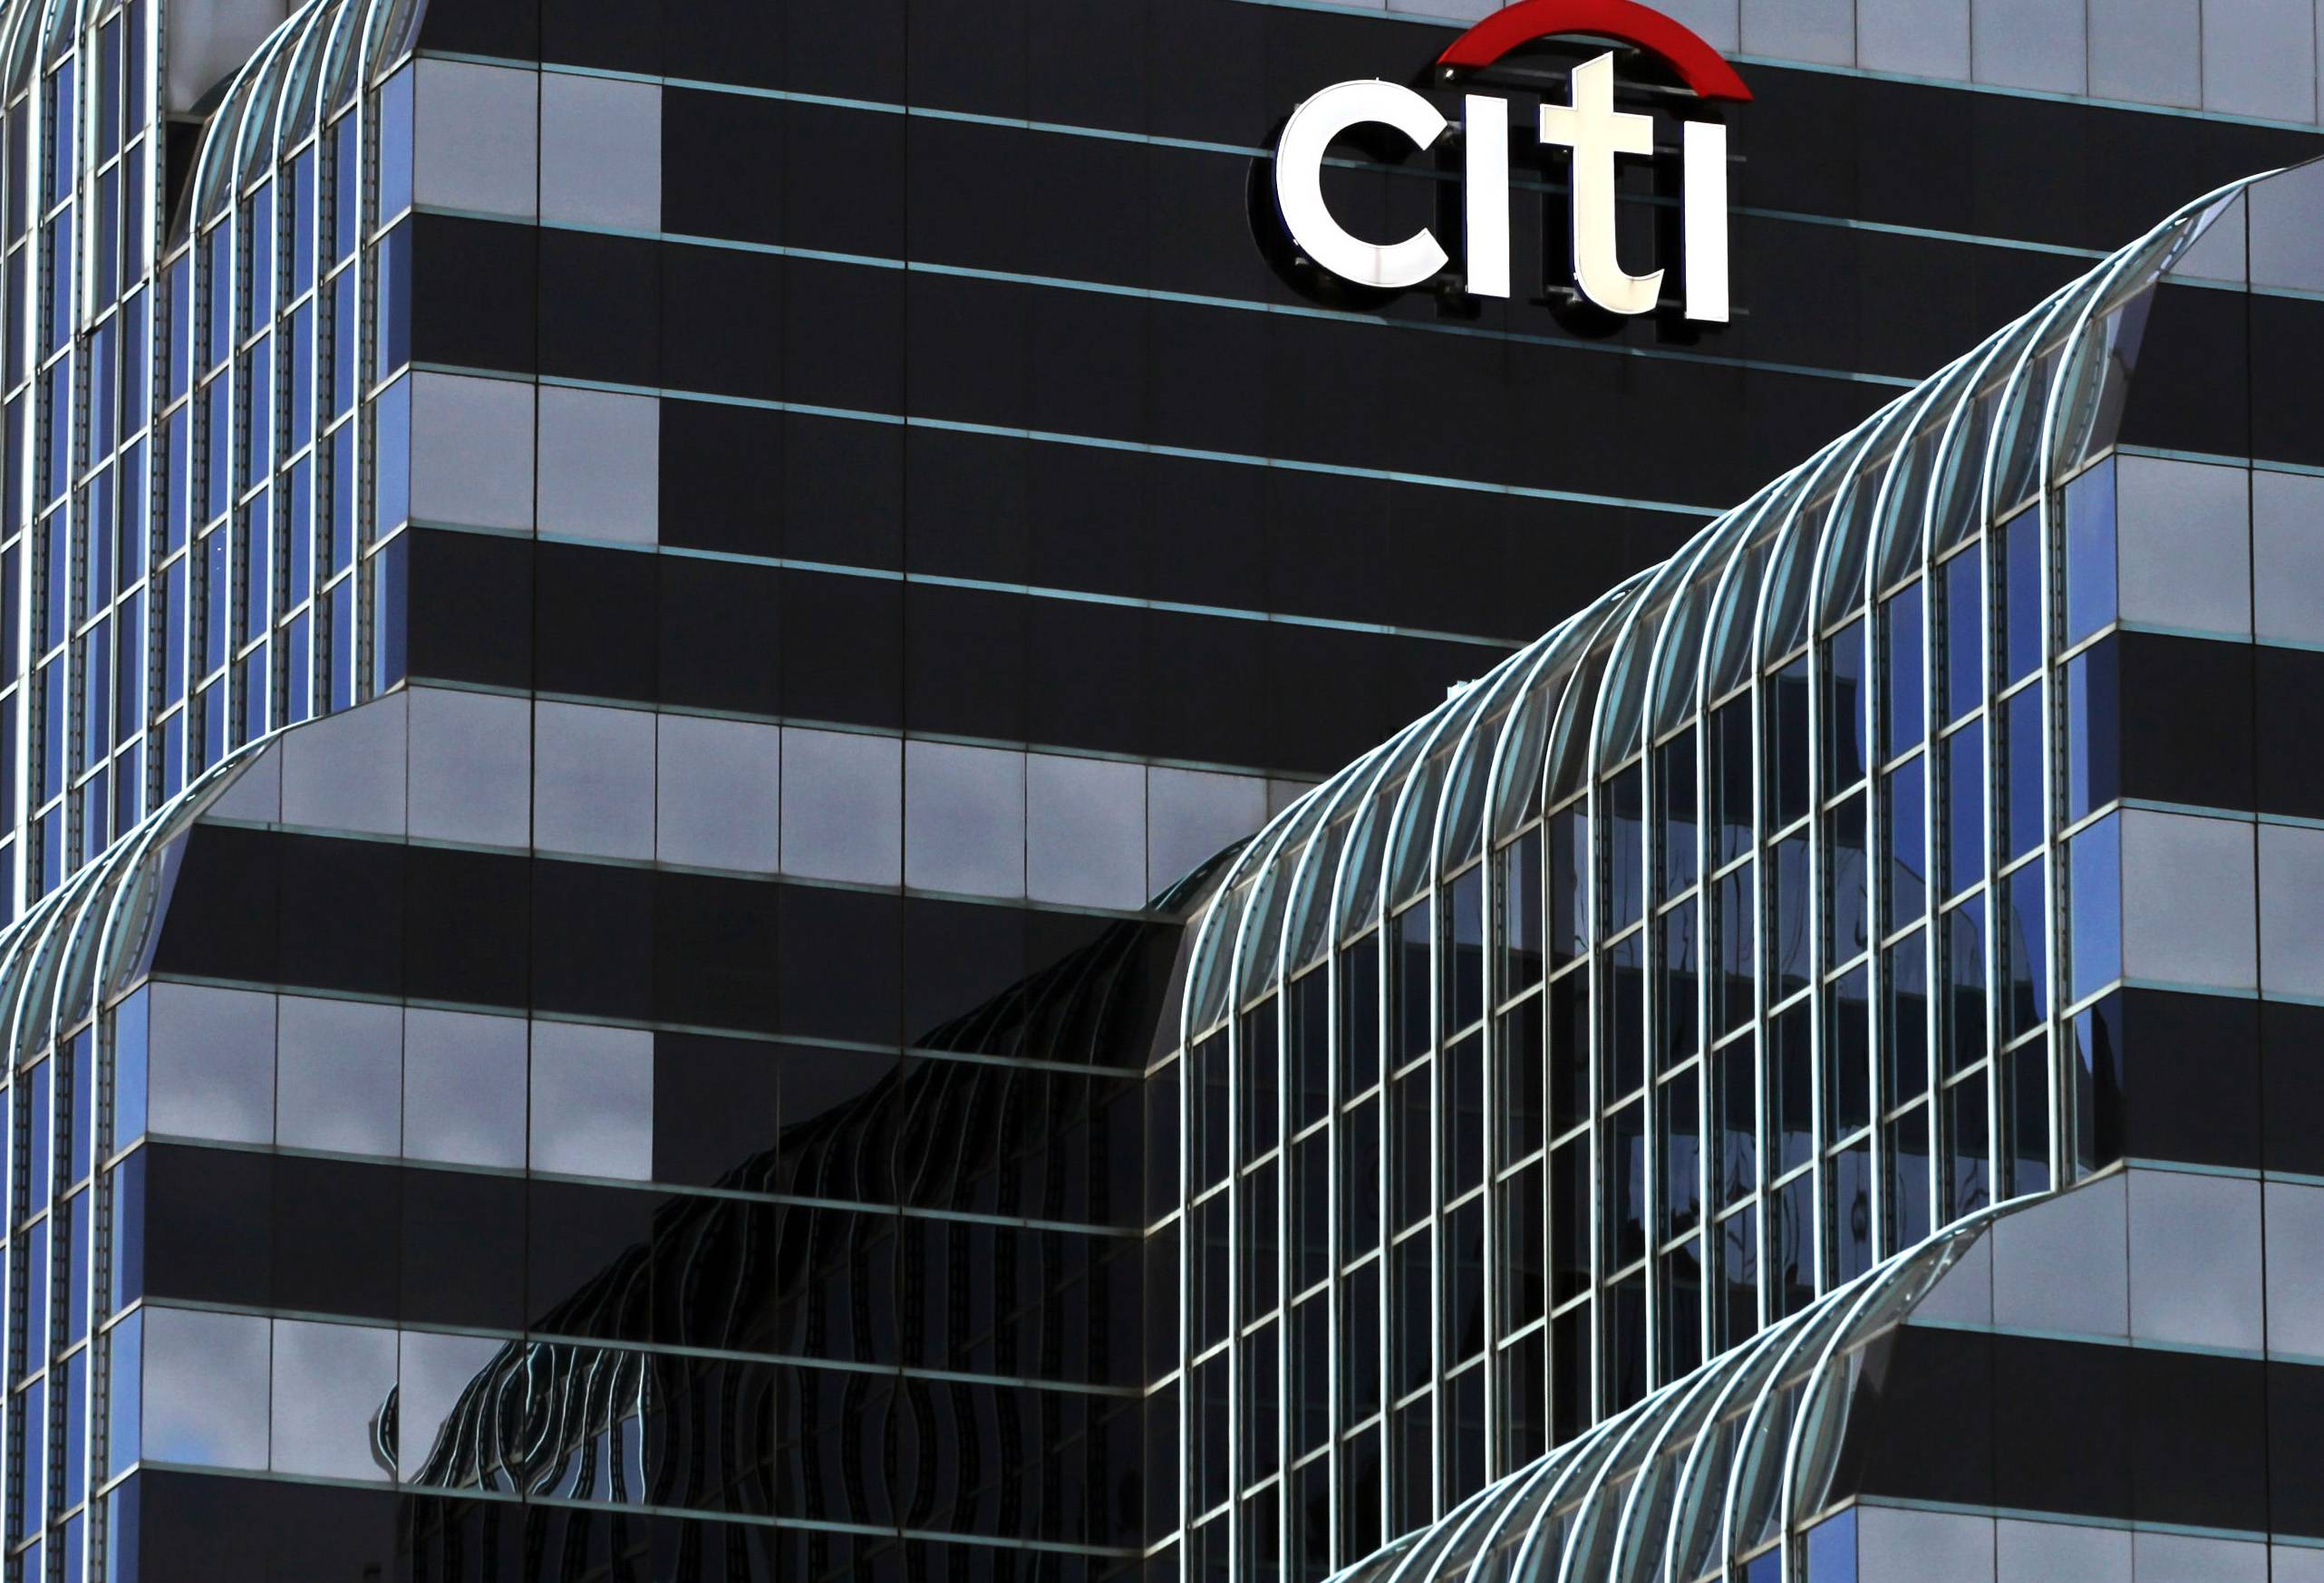 Citigroup Inc., the third-largest U.S. bank by assets, agreed to pay $7 billion in fines and consumer relief to resolve government claims that it misled investors about the quality of mortgage-backed bonds sold before the 2008 financial crisis.